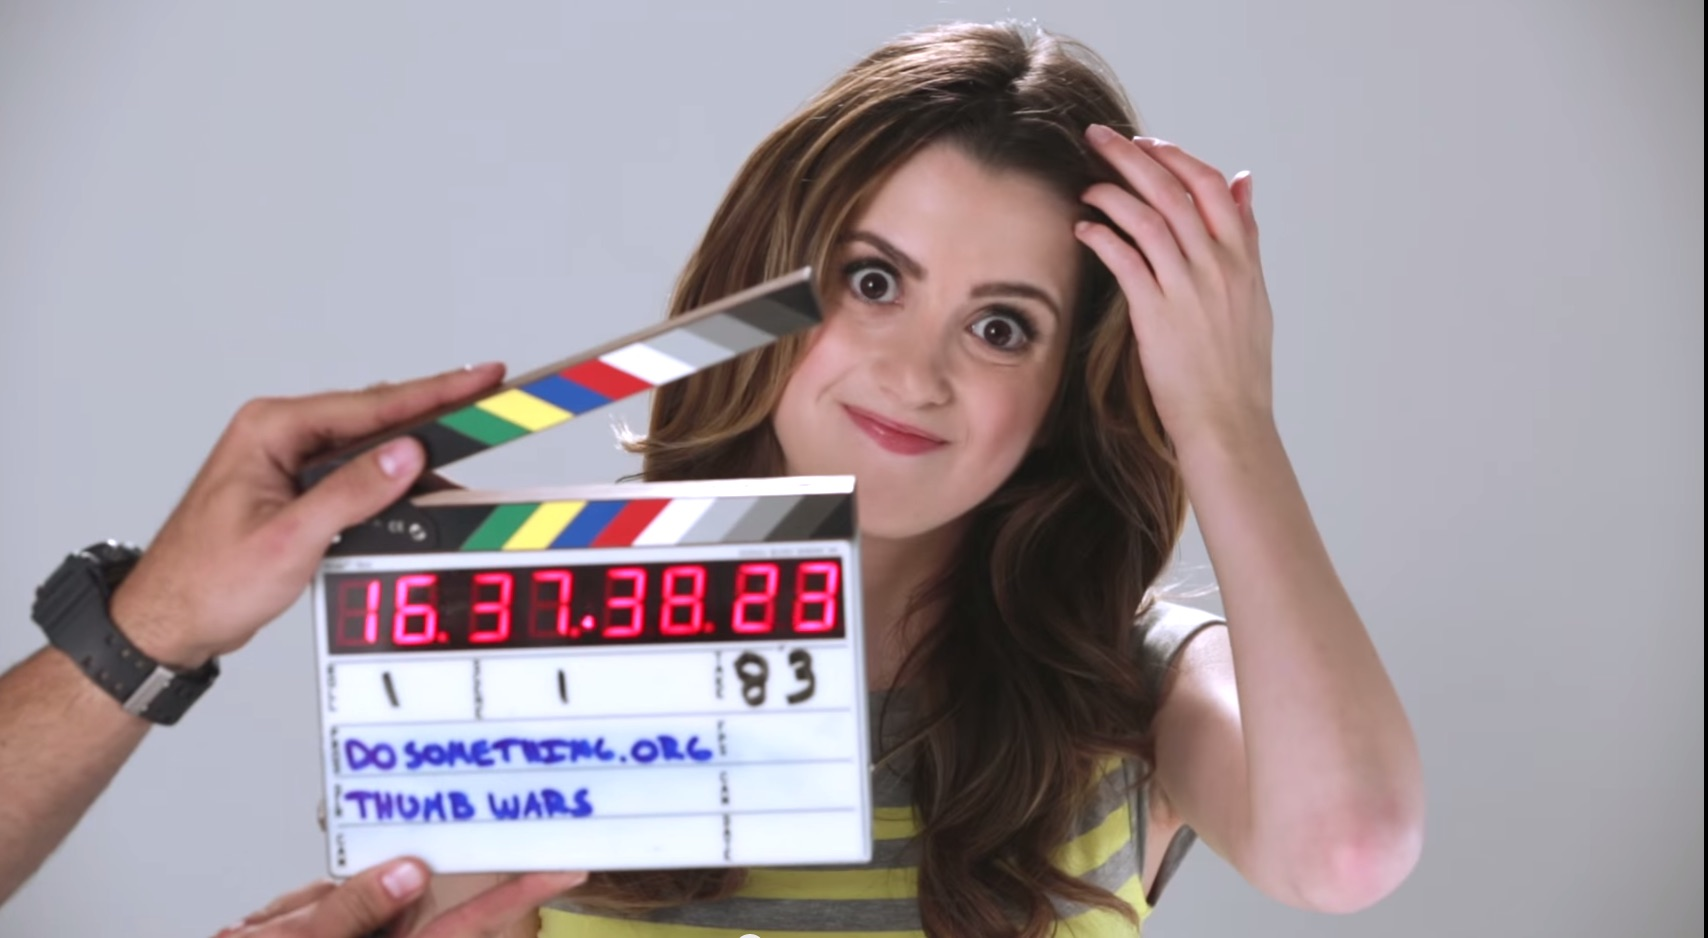 Laura Marano encourages teens to stop texting and driving in the cutest way possible